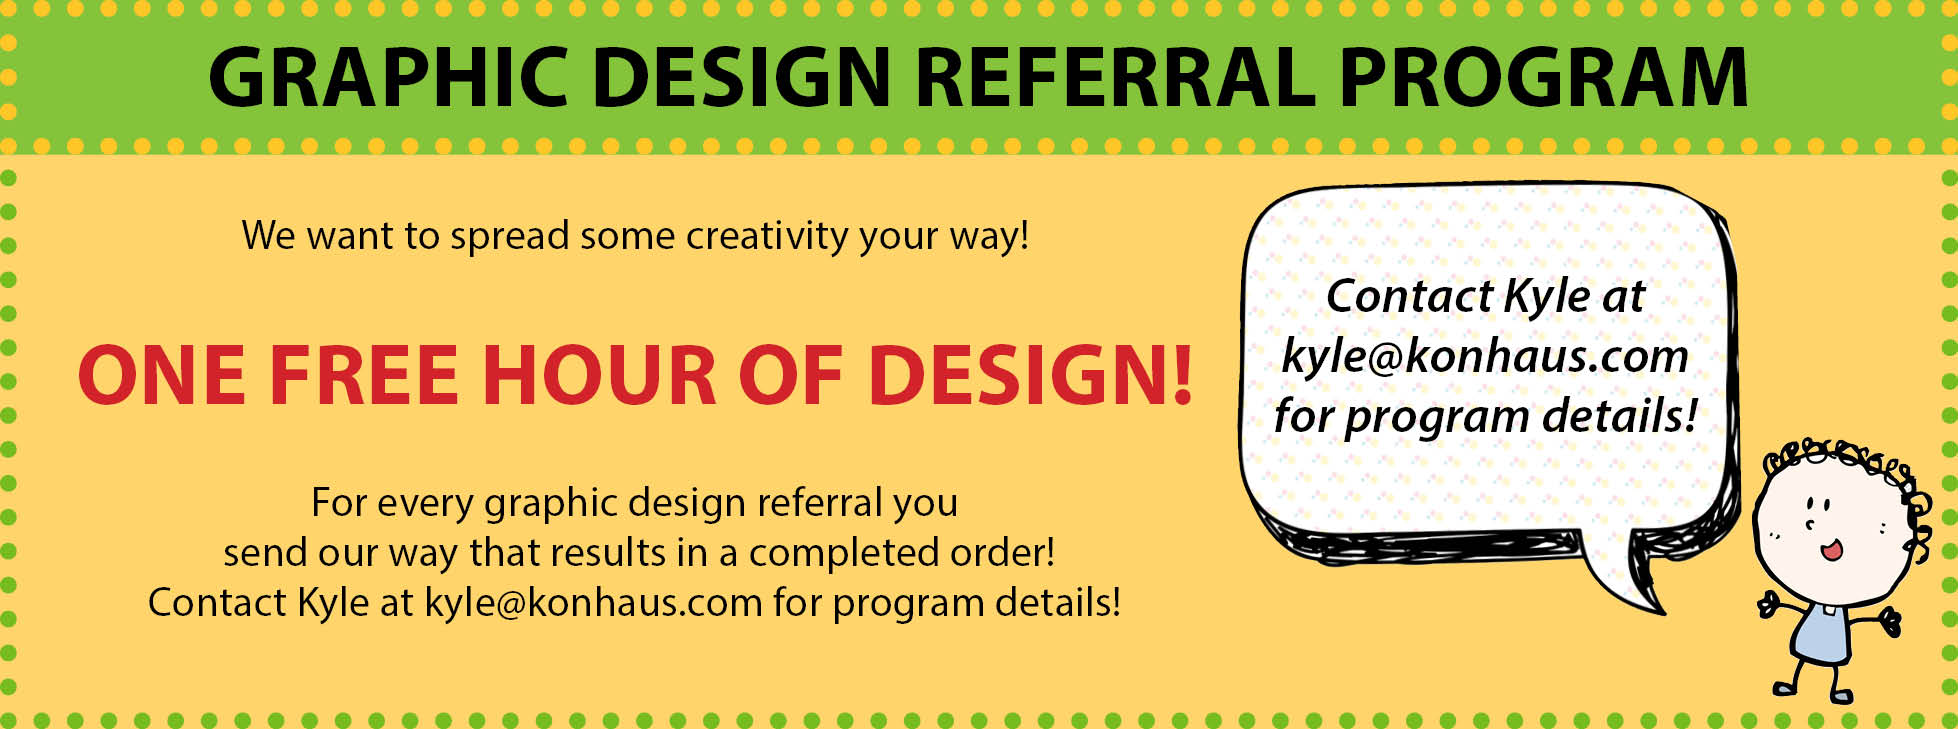 Graphic-Design-Referral-Program